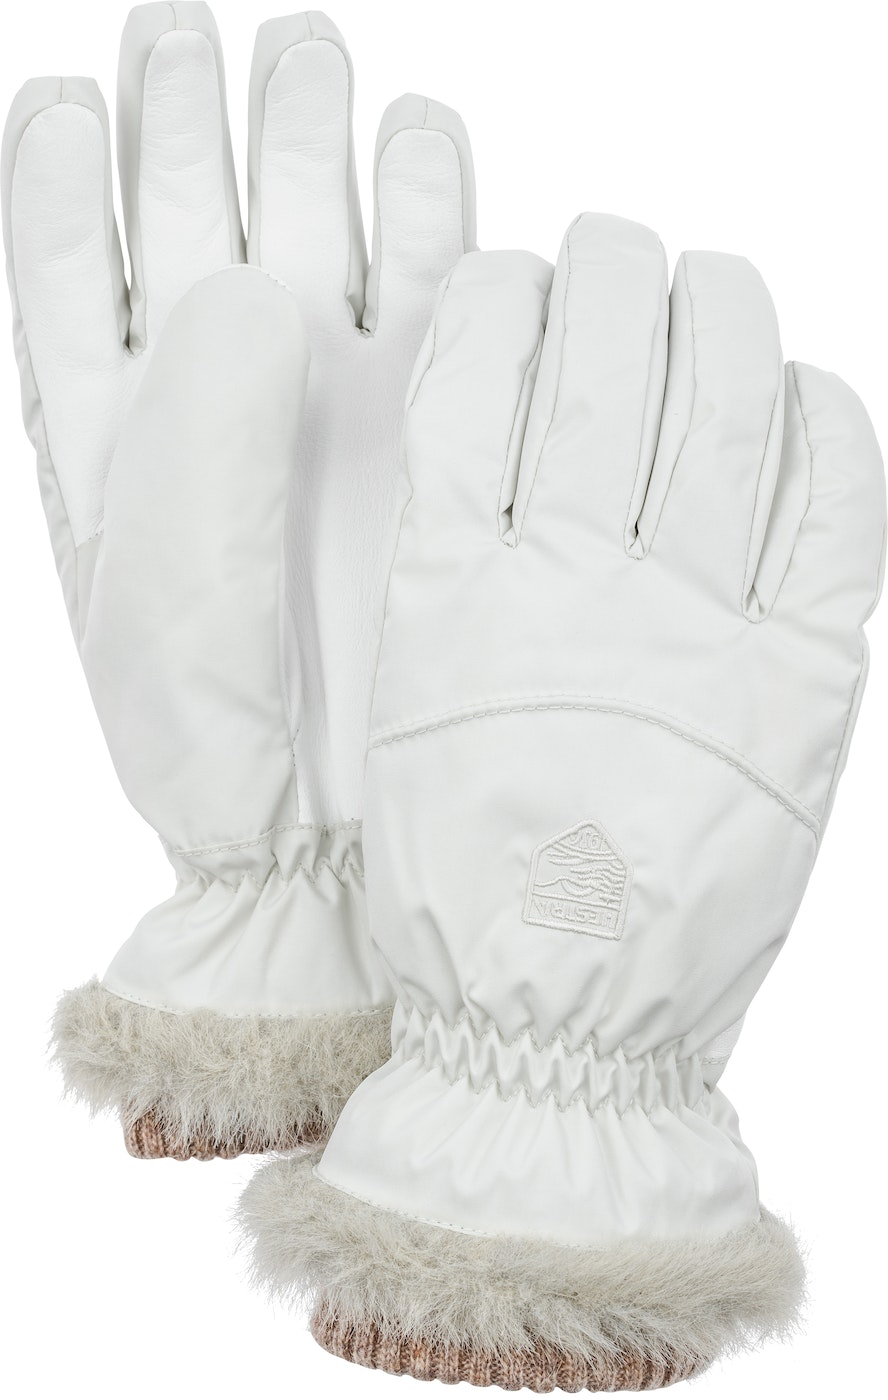 Product image for 32860 Women´s Primaloft Winter Forest